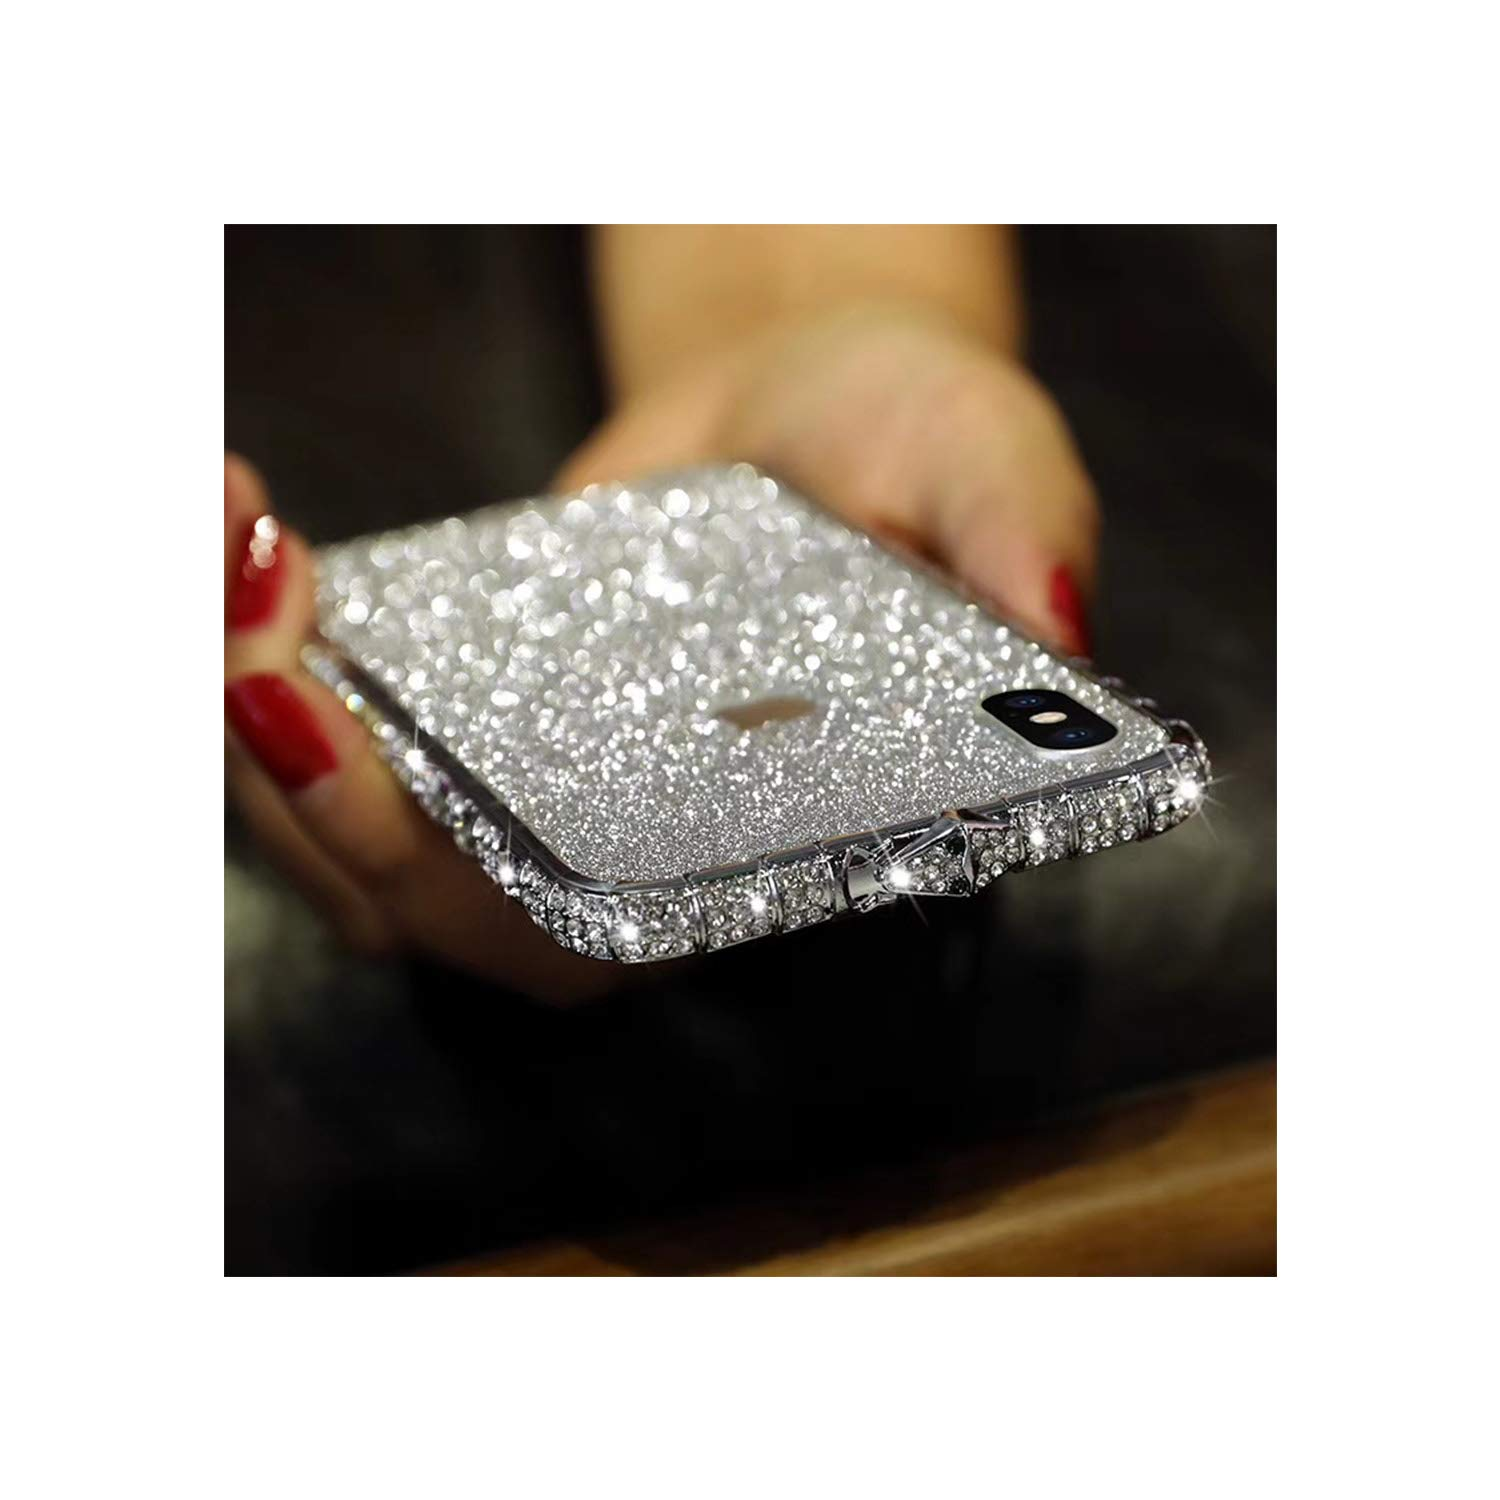 Bling Diamond Metal Bumper Case Glitter Sticker For iPhone 6S Plus 3d Bling Glitter Sparkly Luxury Rhinestone Jeweled Edge Frame For Woman Girls - Silver by DALINBA